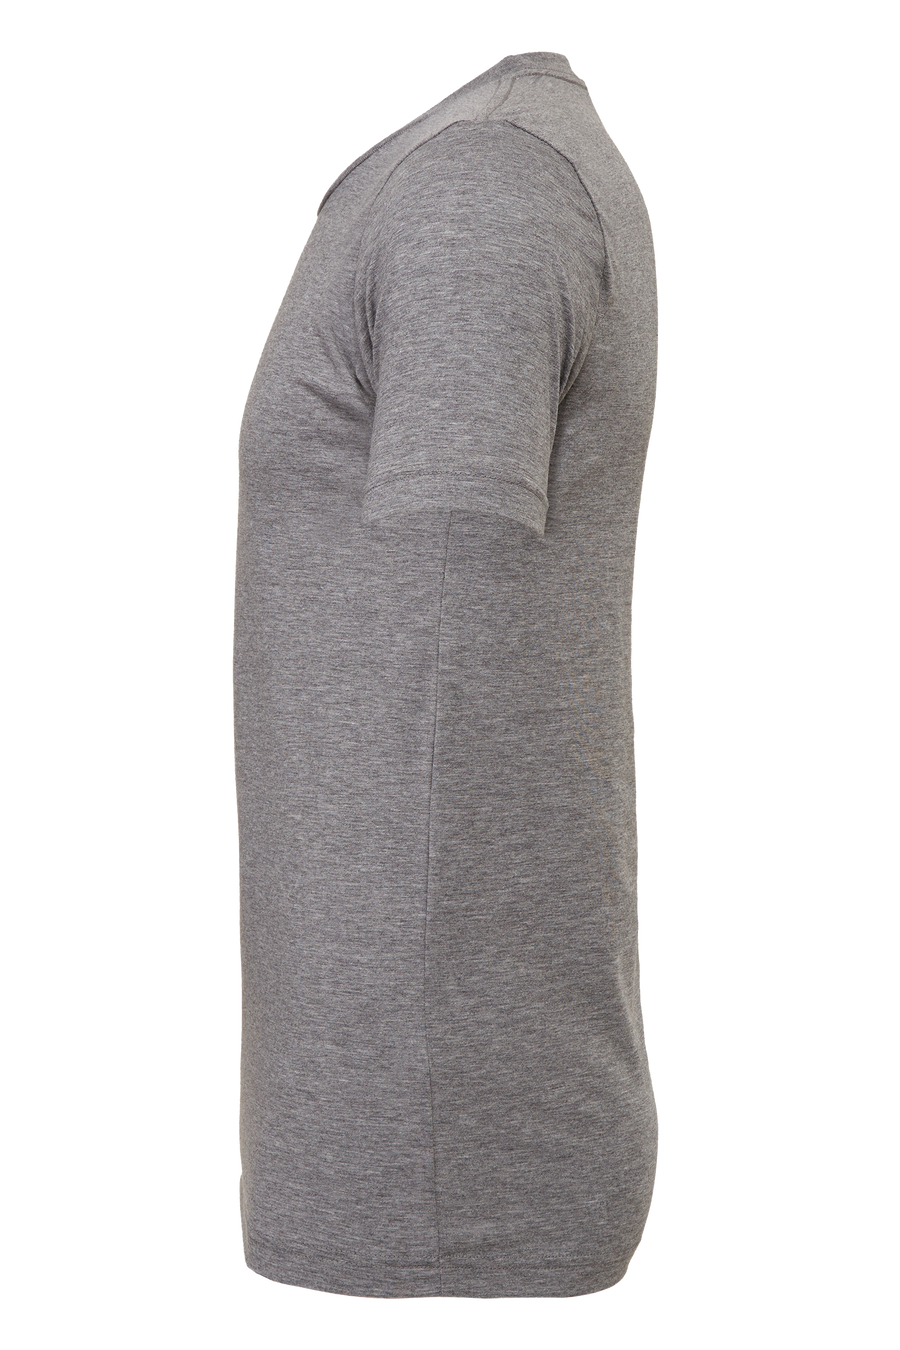 Wonder Goods t-shirt side view in heather gray.